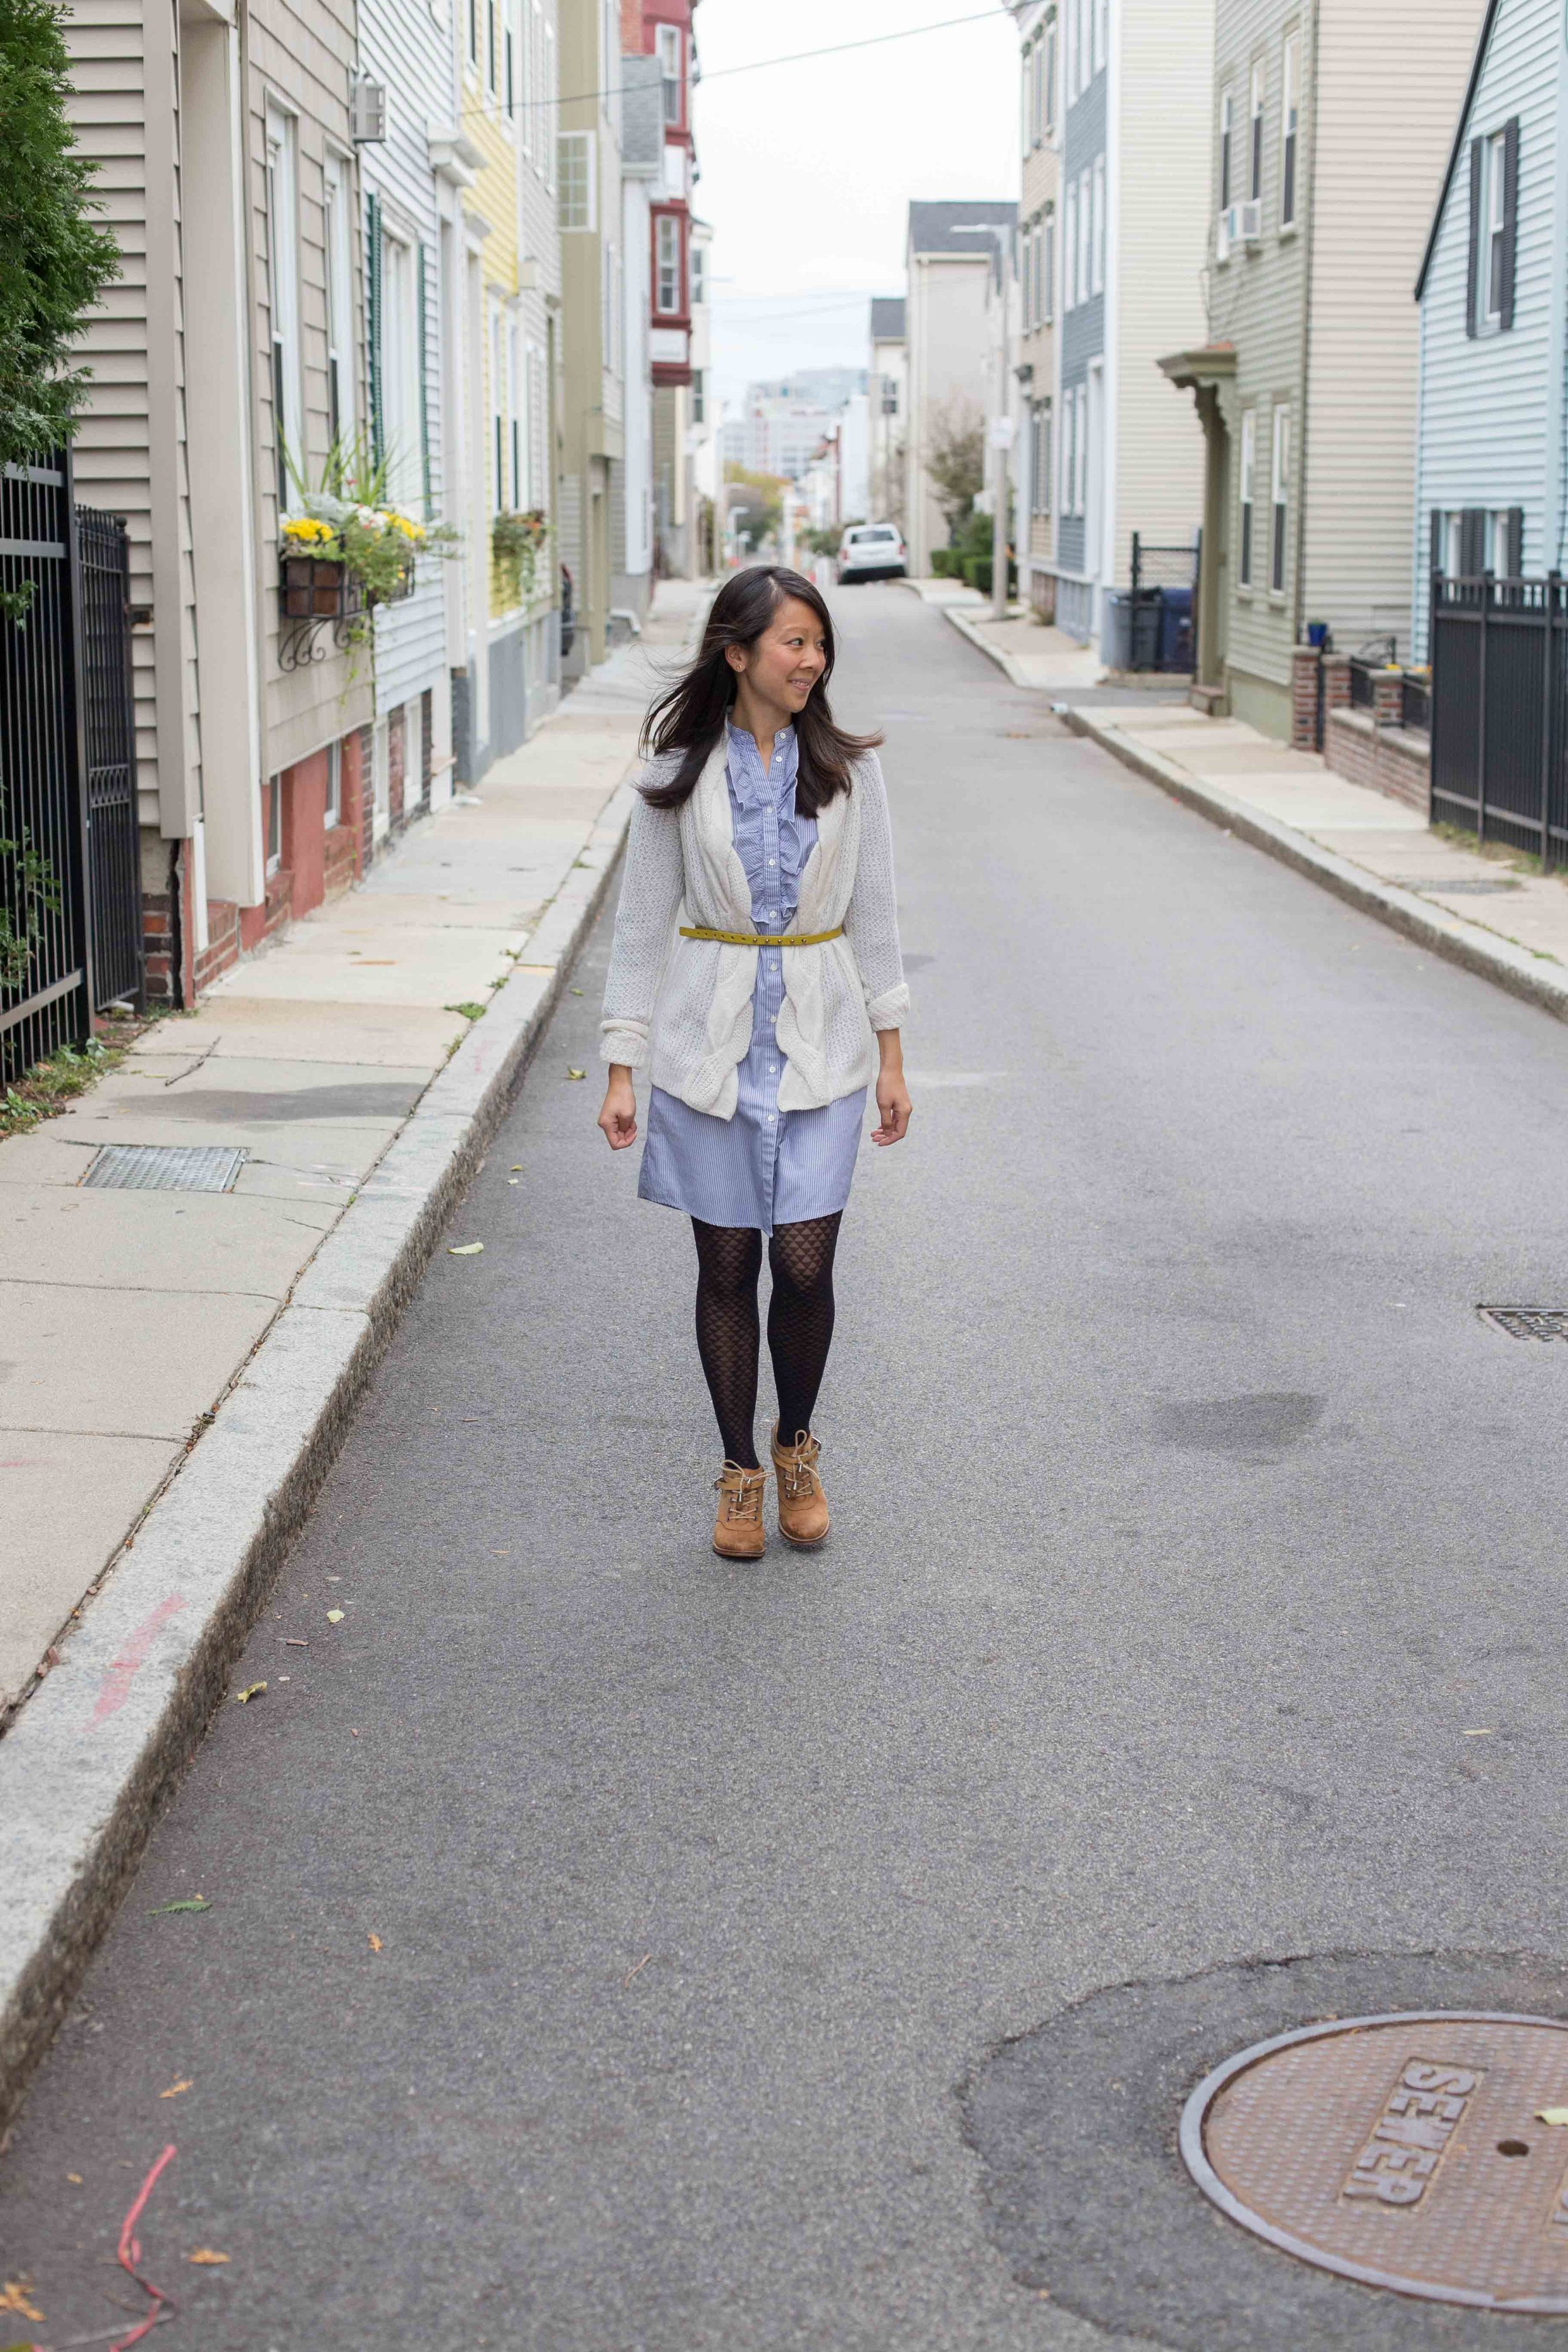 Gap_JCrew_The Limited_Anthropologie (2)